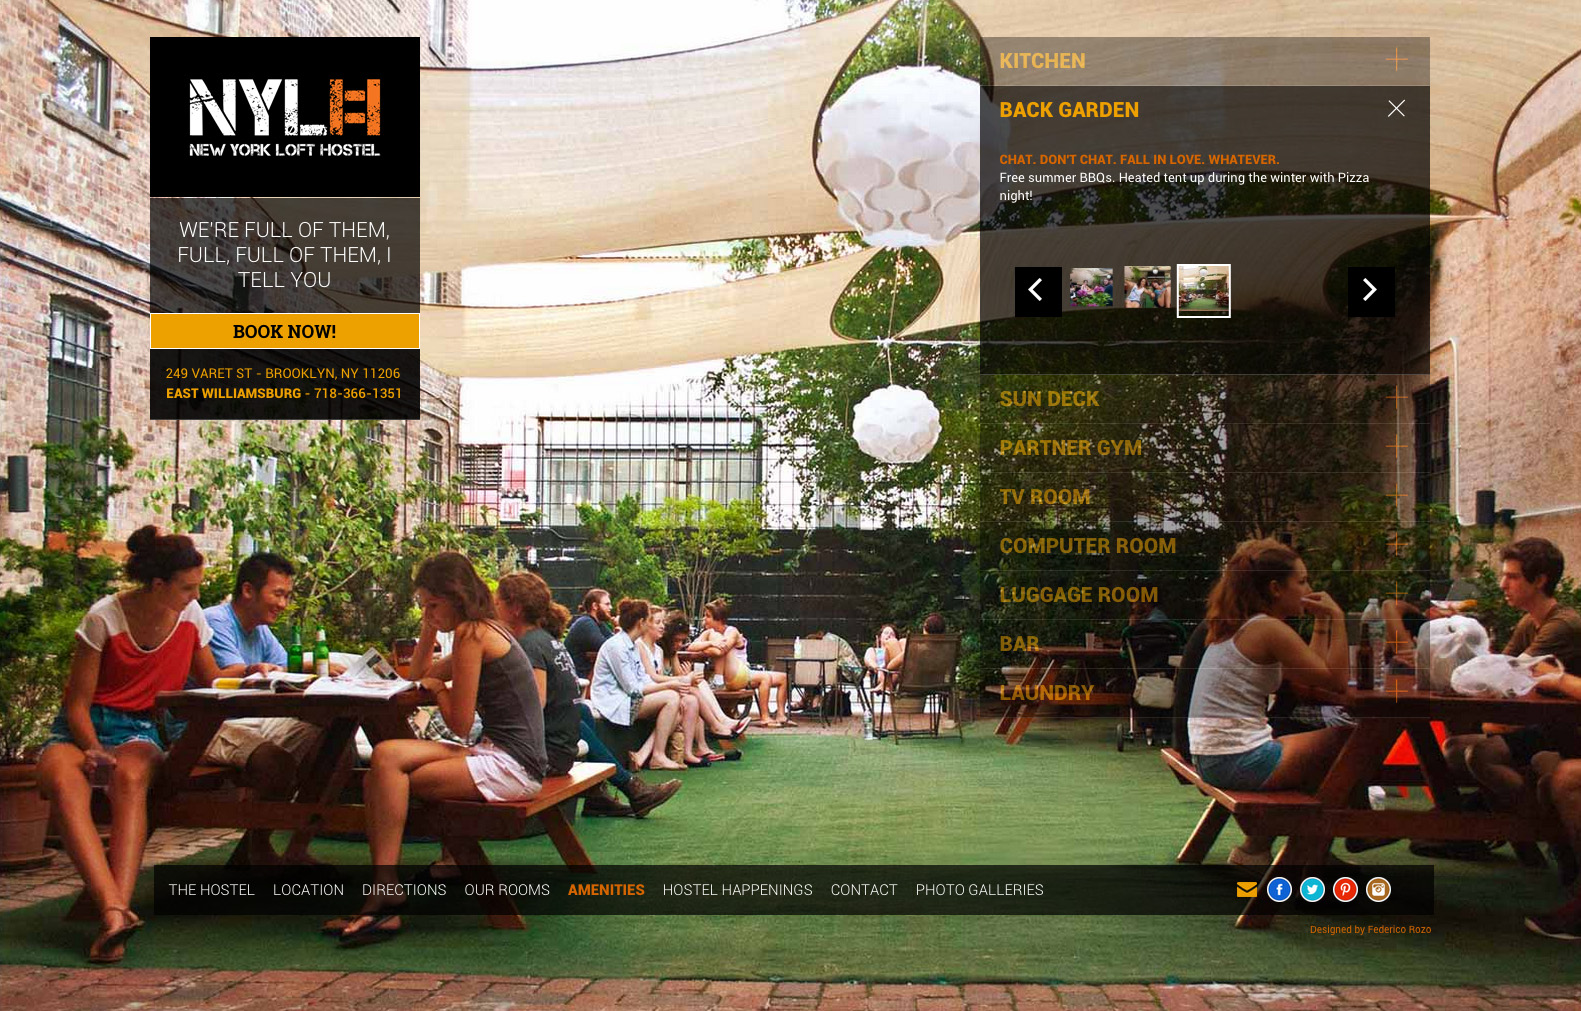 new york loft hostel website